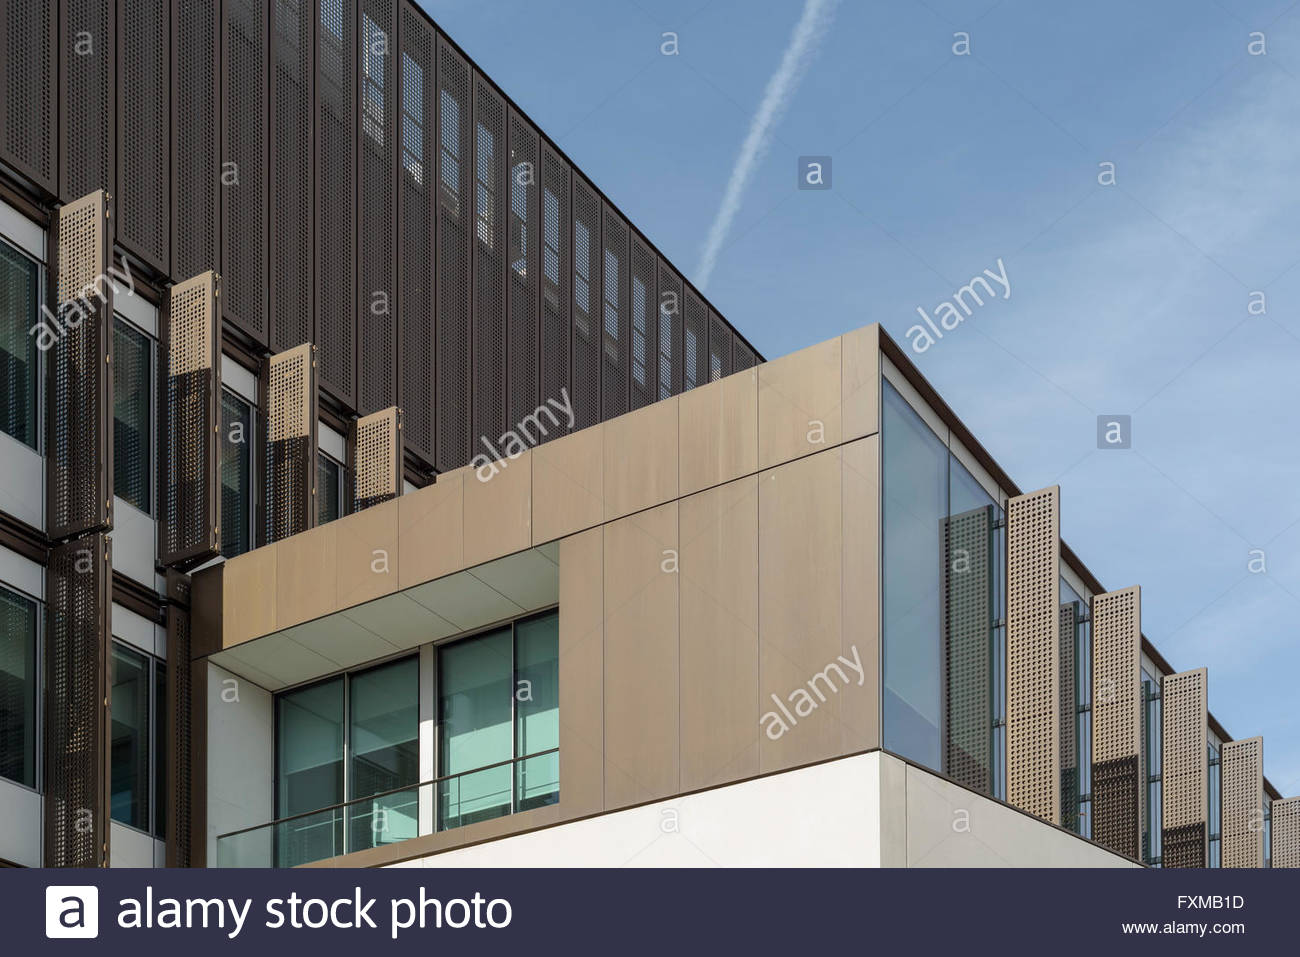 Maurice Wohl Clinical Neuroscience Institute - Stock Image